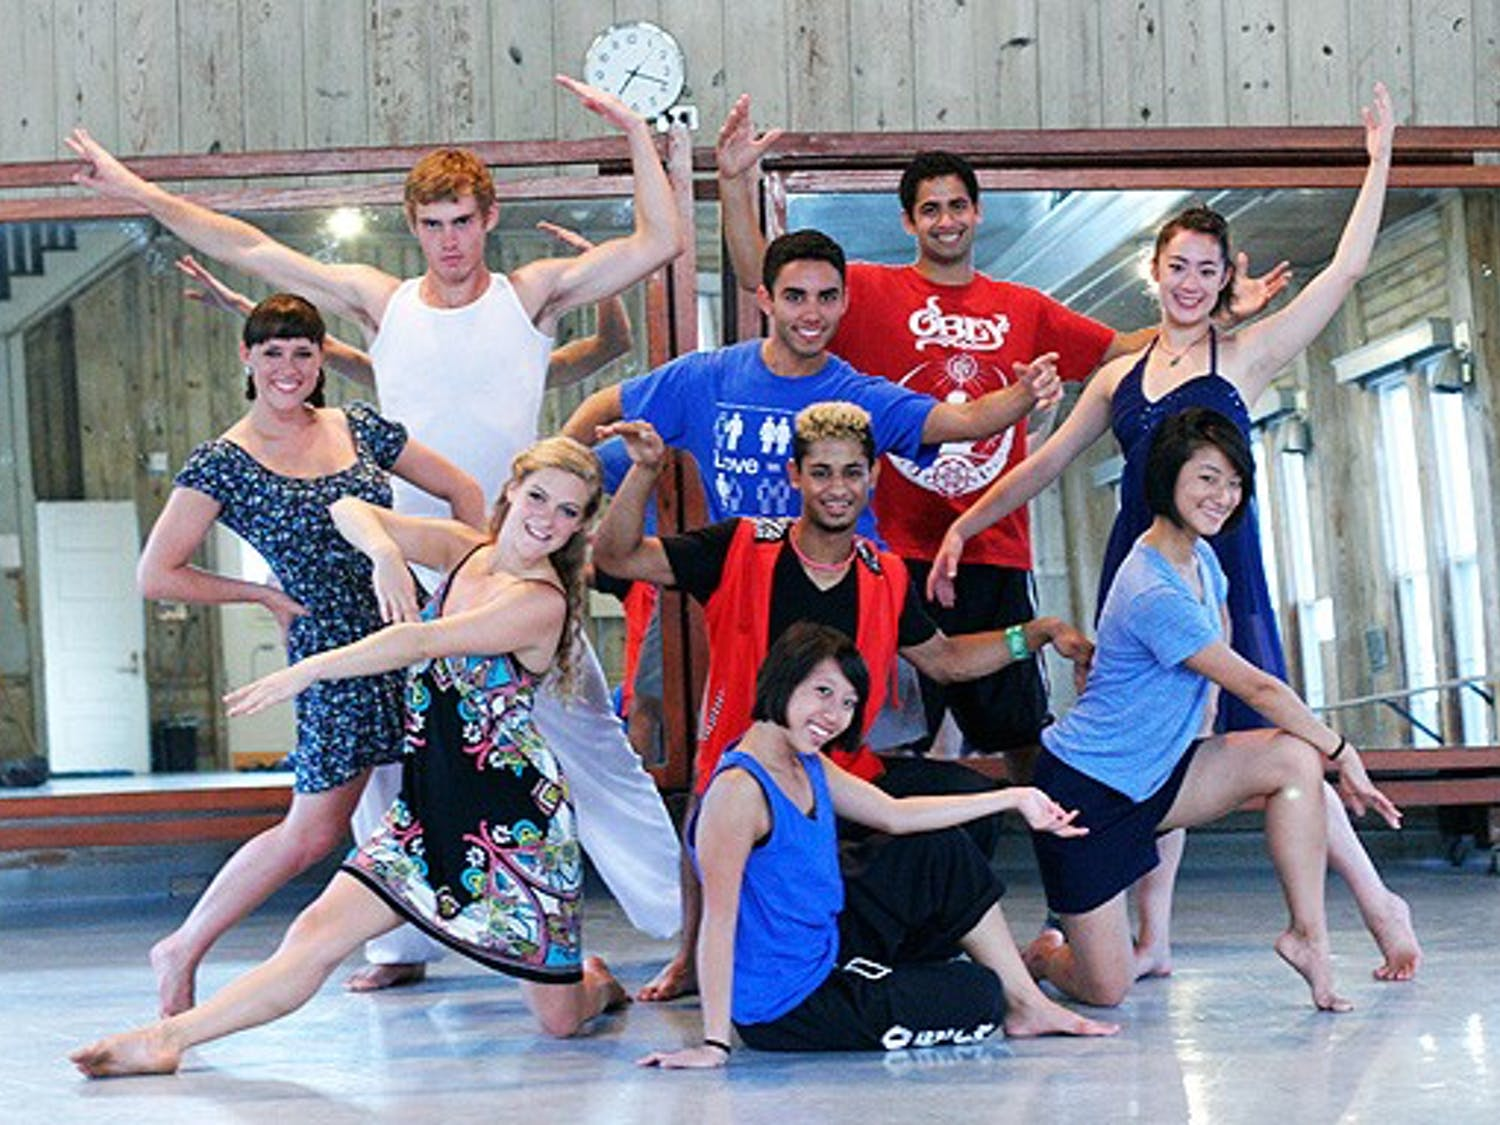 Dancers who performed in China at the opening ceremony of the 2011 Universiade Games had only two weeks to learn the choreography.